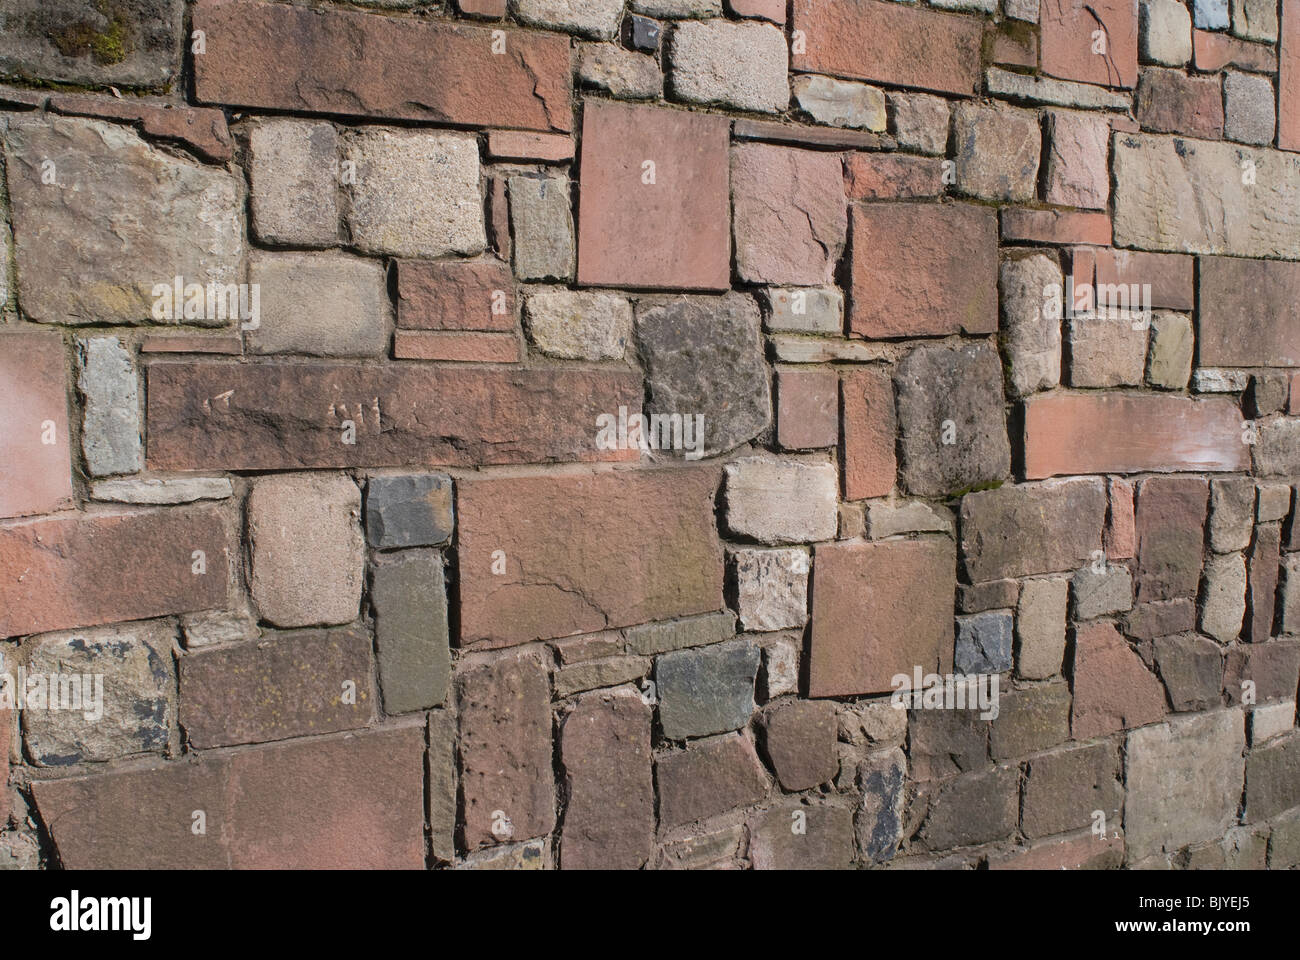 A solid stone wall made of sandstone limestone and granite. - Stock Image